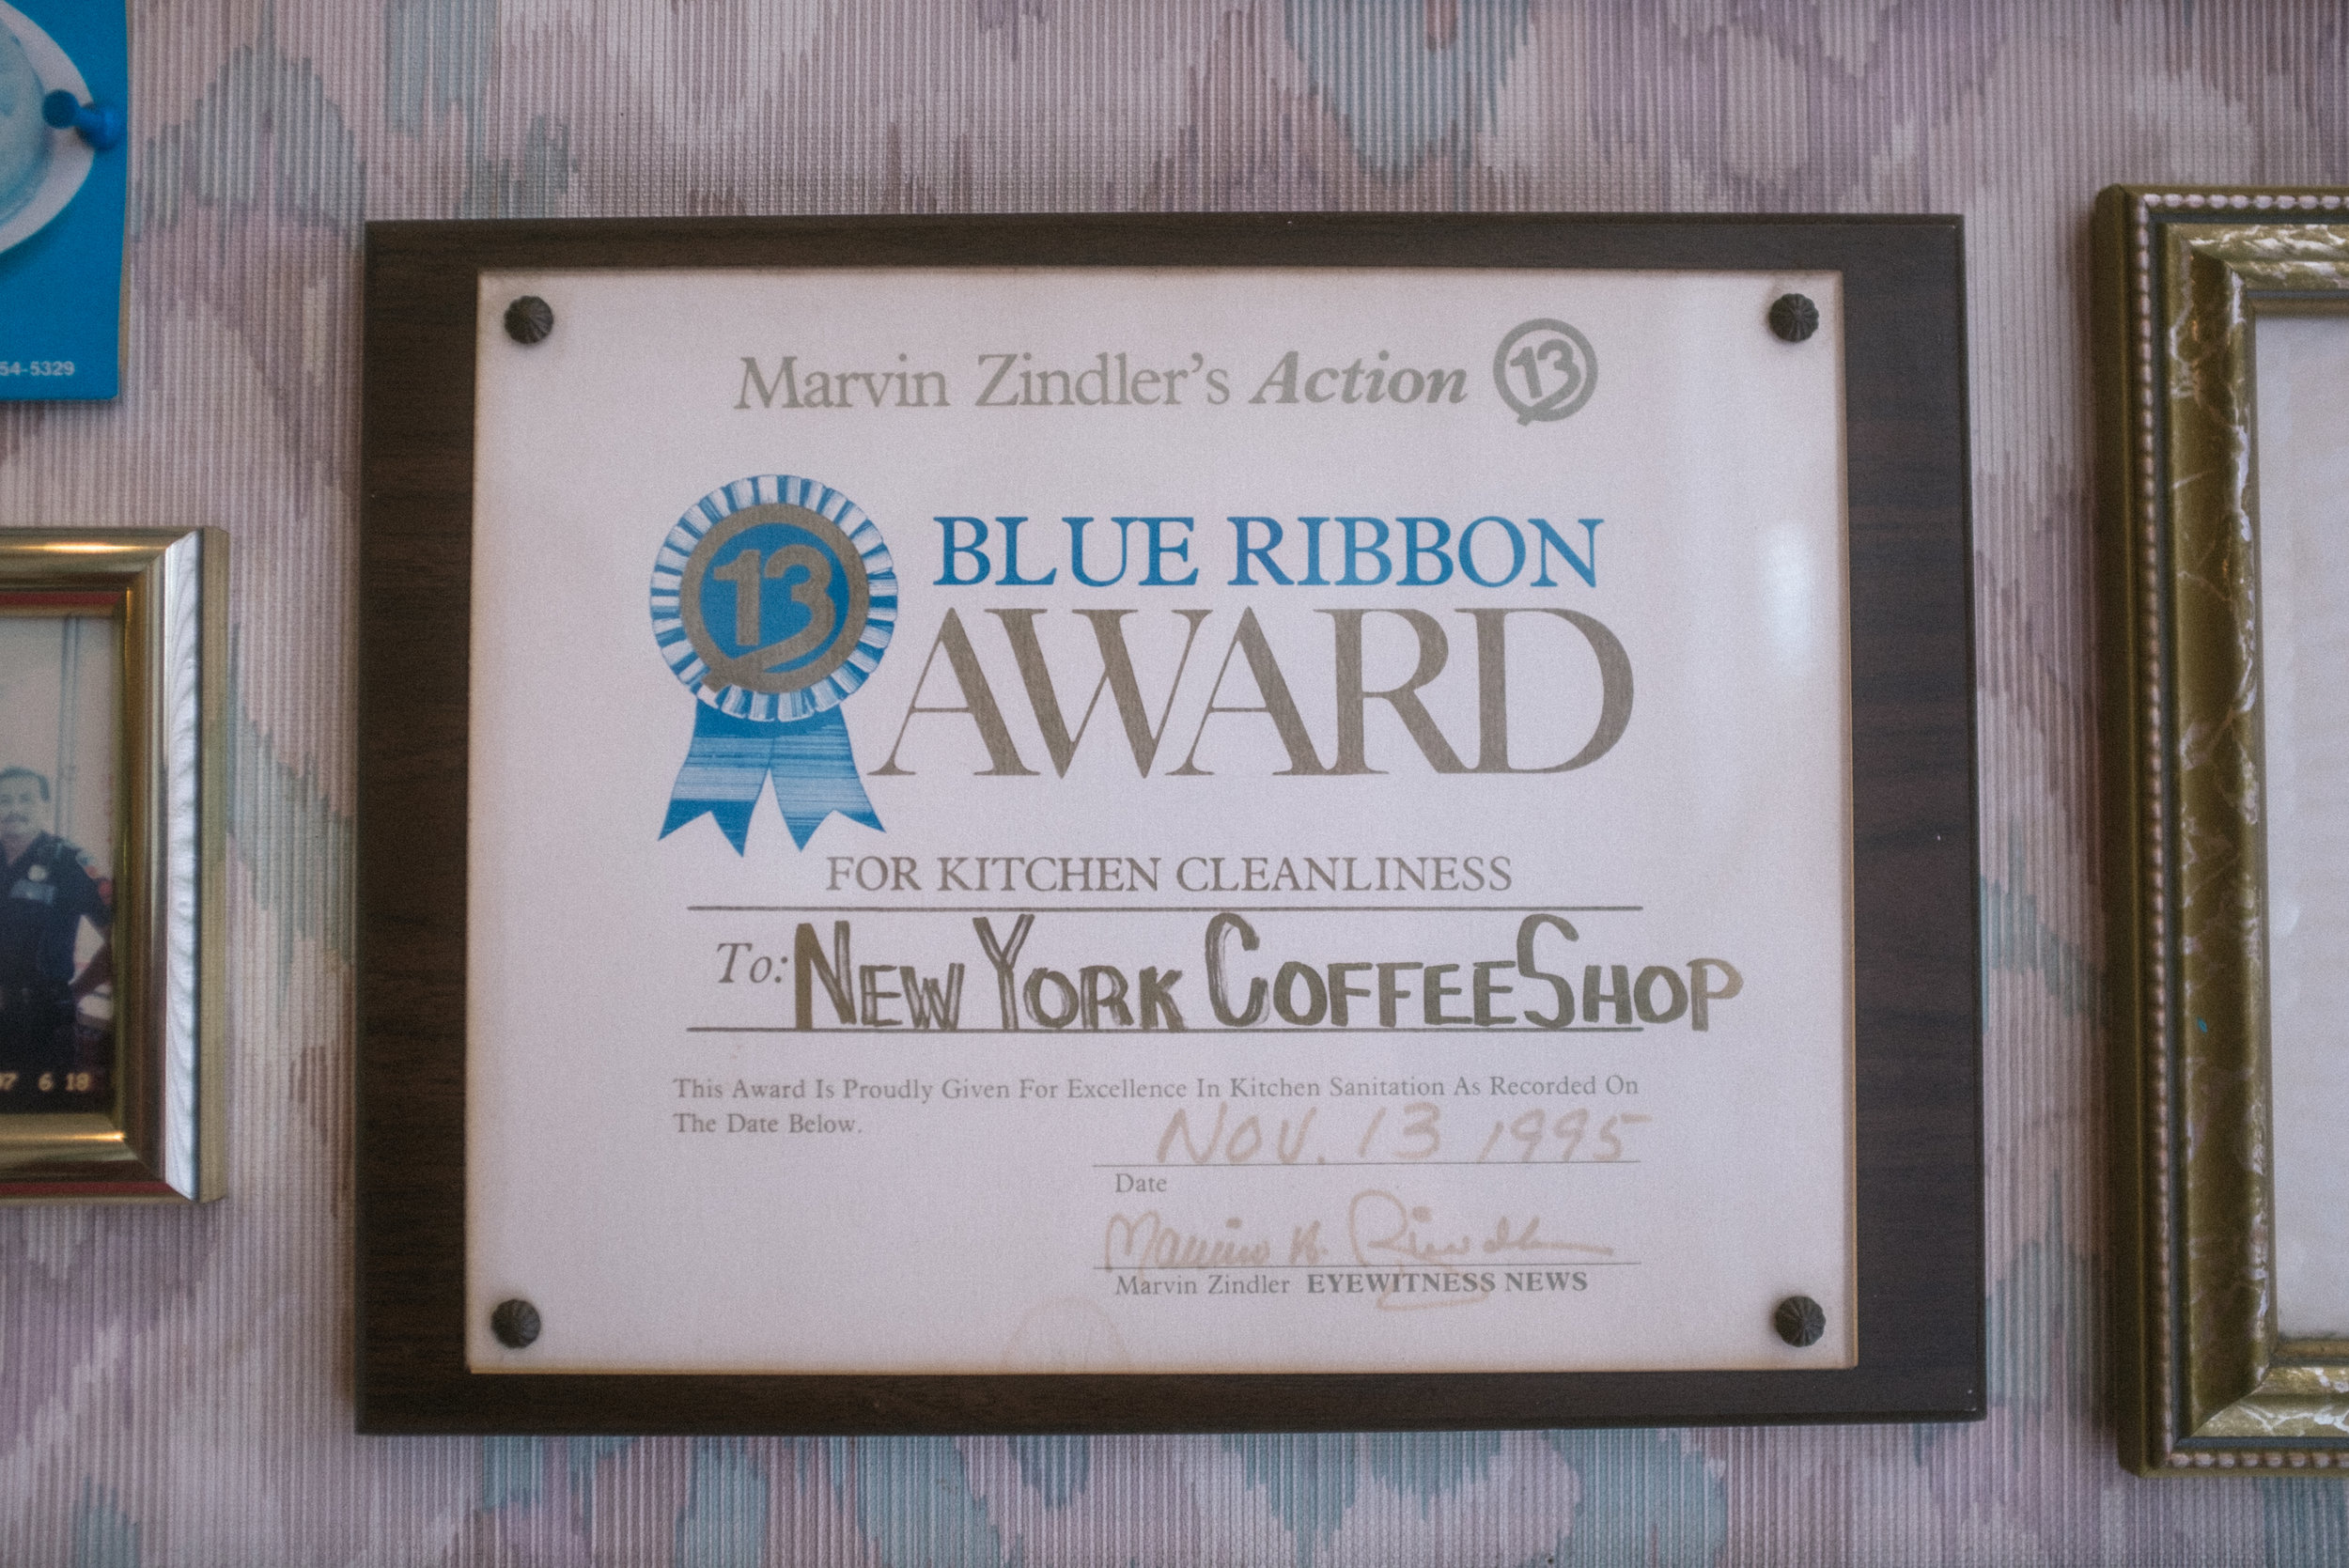 Nothing shows that you are part of Houston's warp and woof like an award from Houston's original foodie, Marvin Zindler. (Kids, youtube this one....)